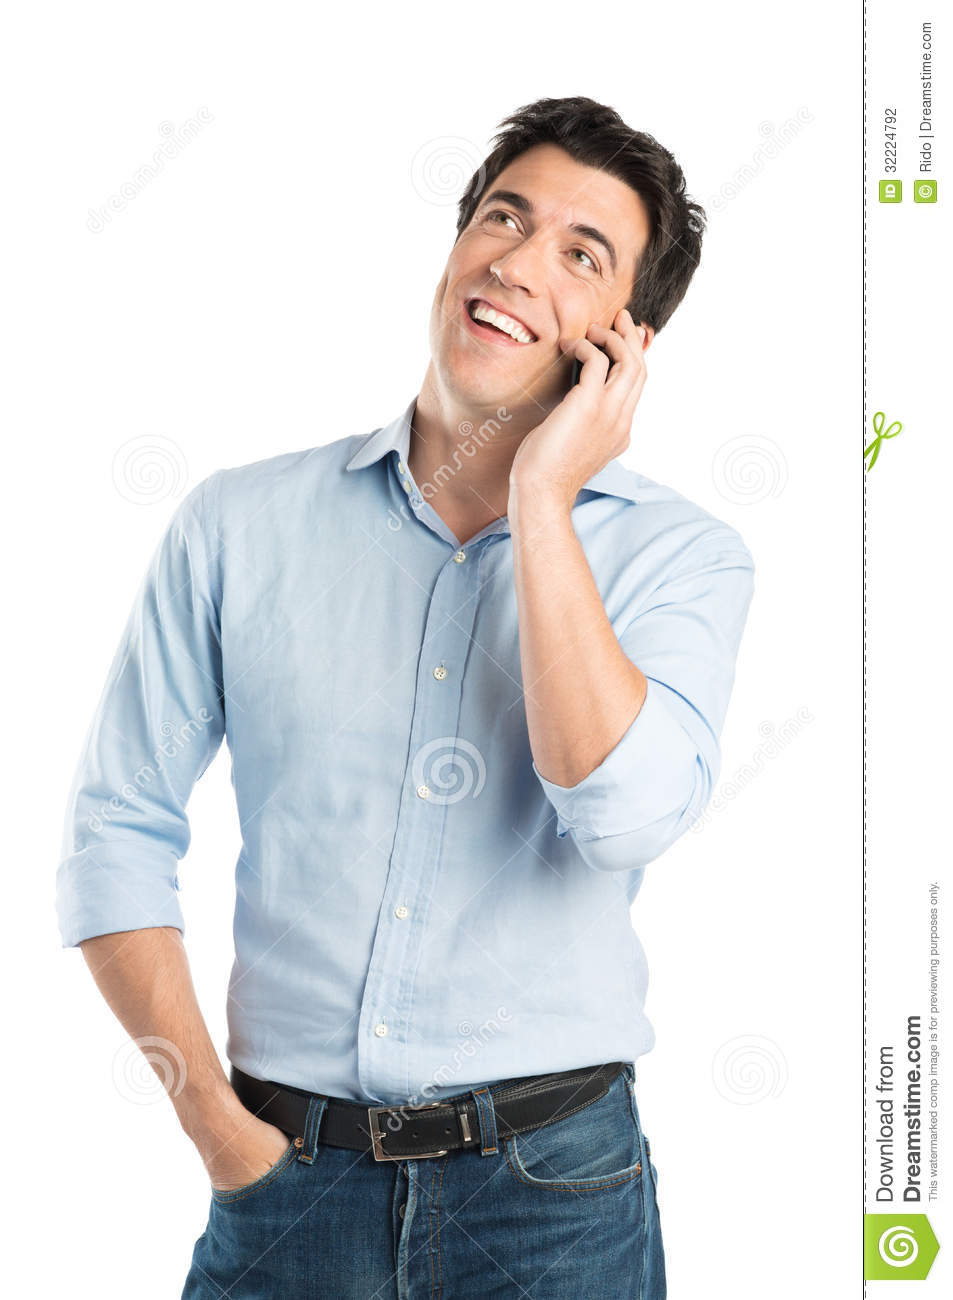 Man On Cell Phone : Happy young man talking on cell phone stock photo image